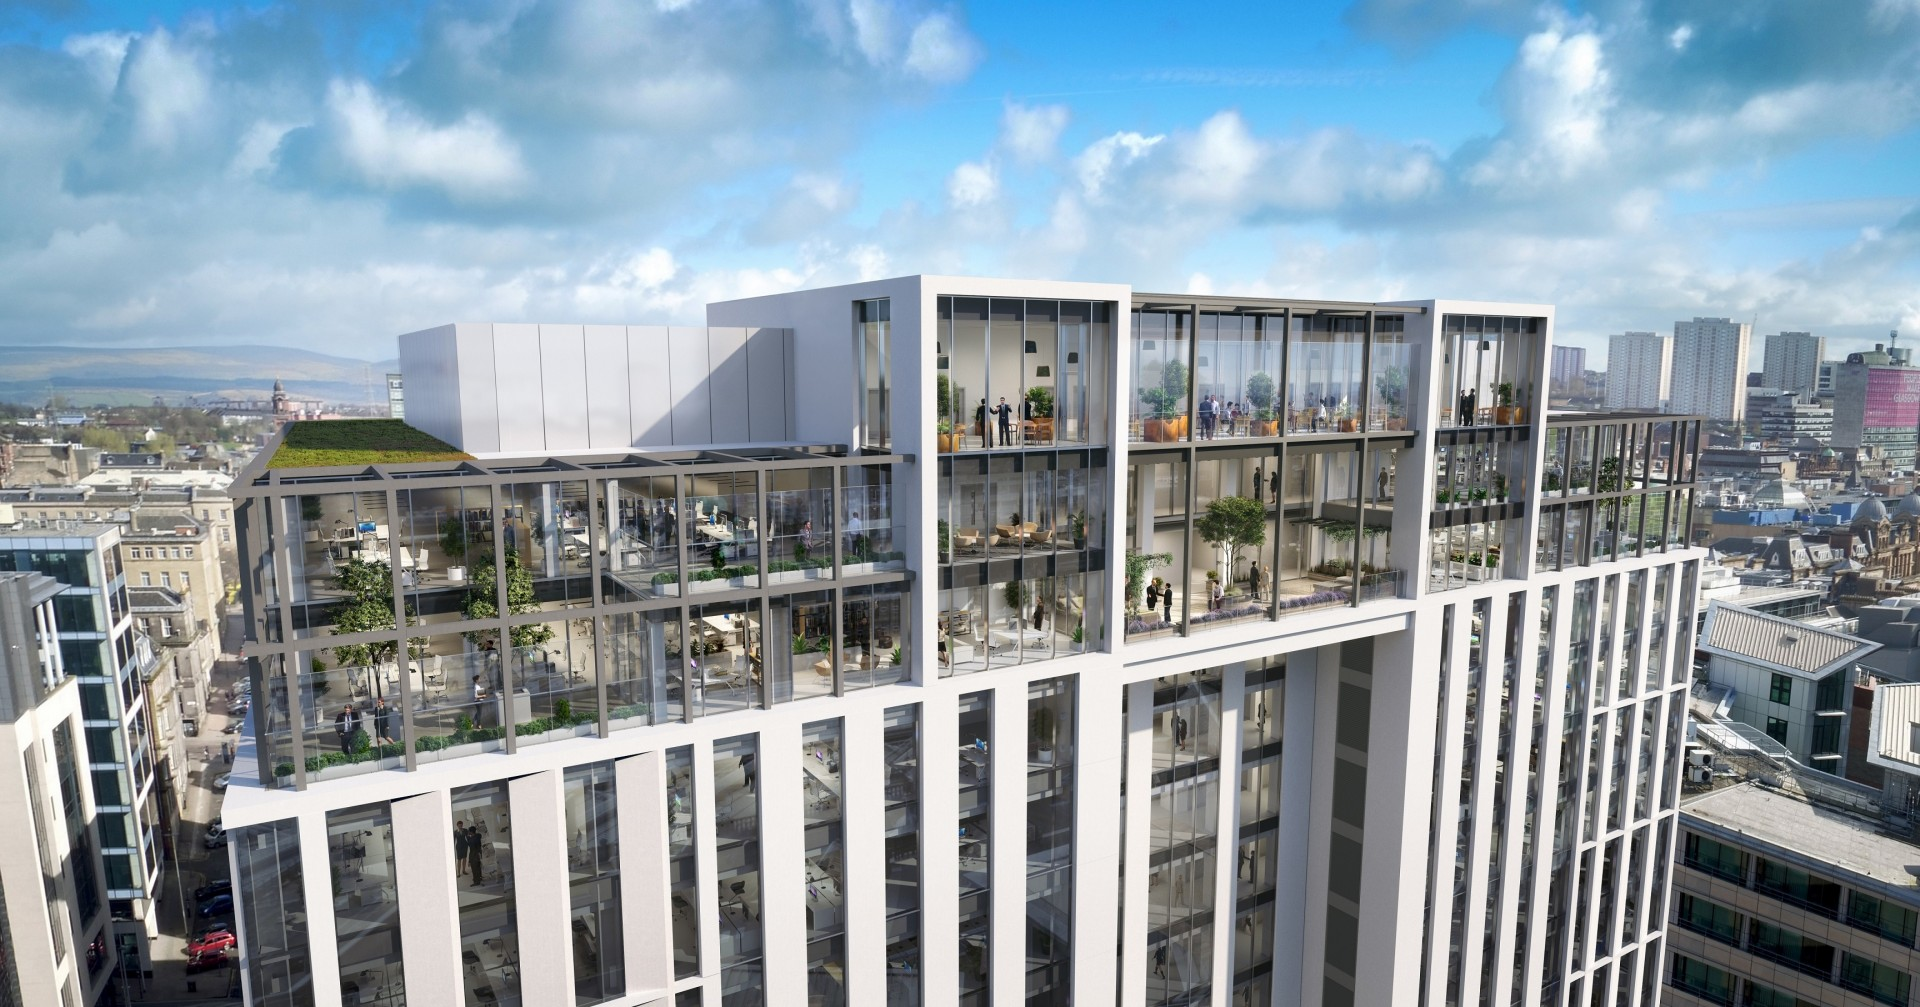 Glasgow Office Market Back In Rude Health October 2018 News Architecture In Profile The